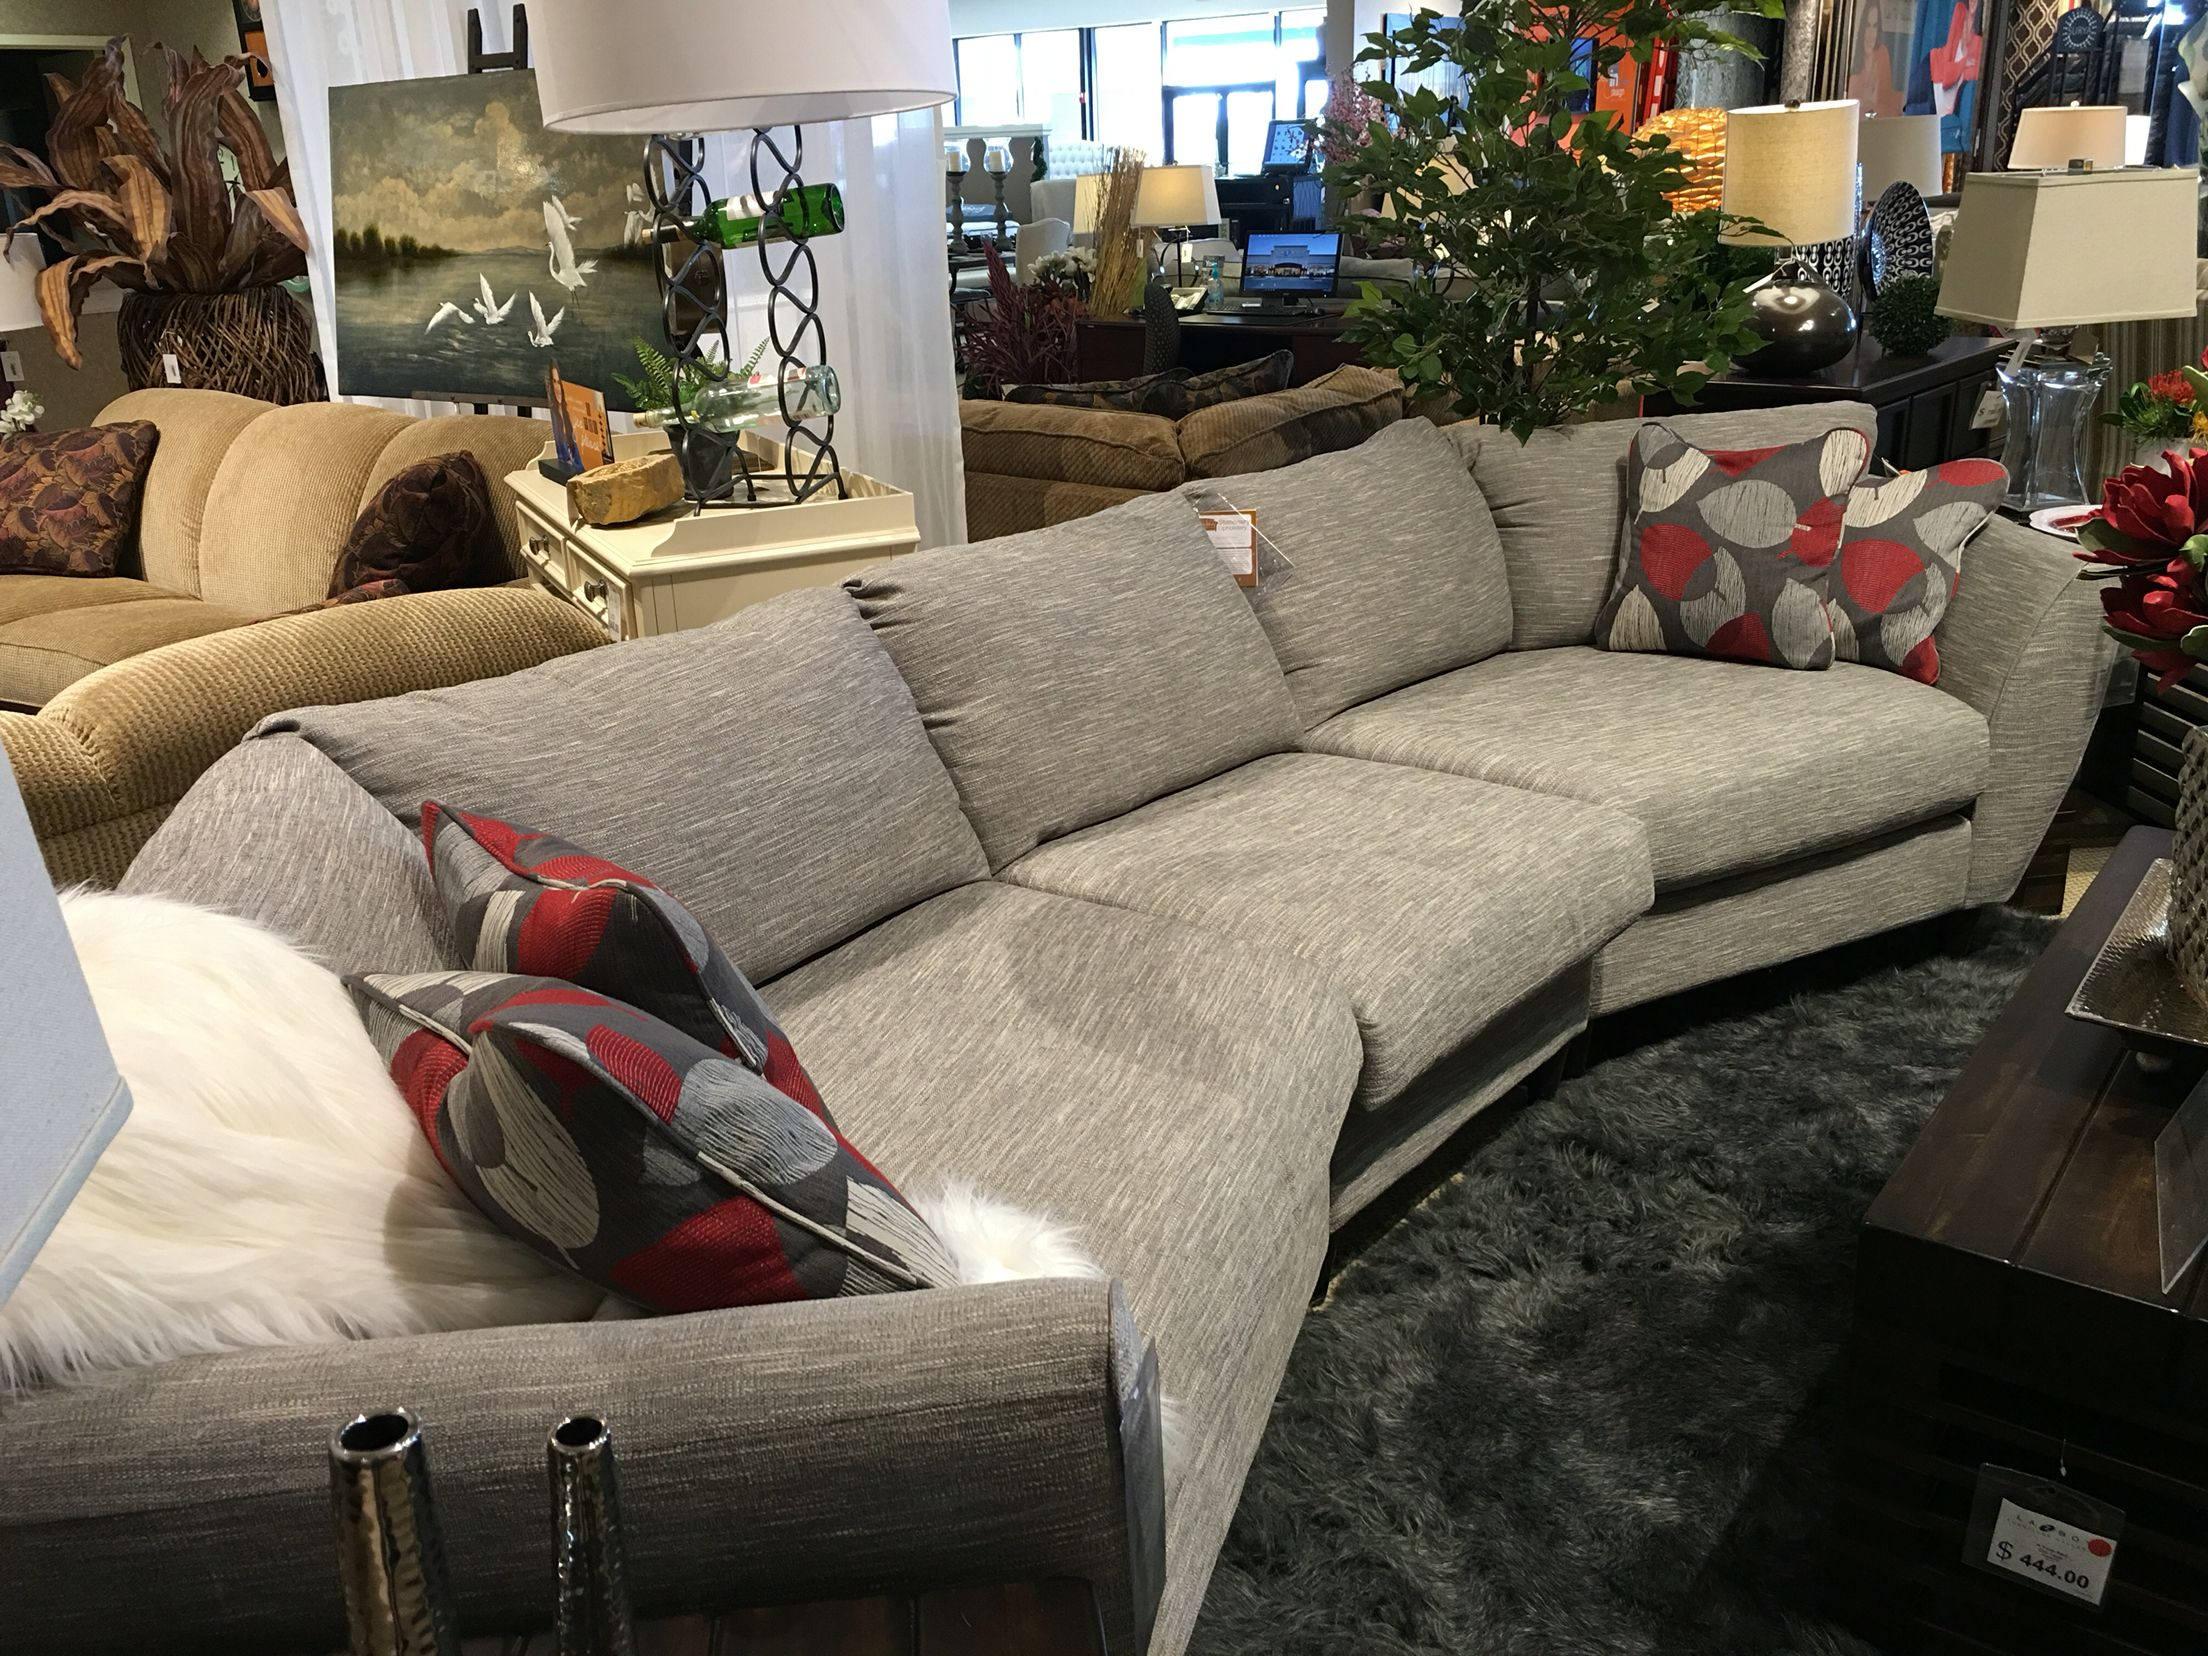 Cool Lazy Boy Couches Fresh Lazy Boy Couches 21 In Modern Sofa